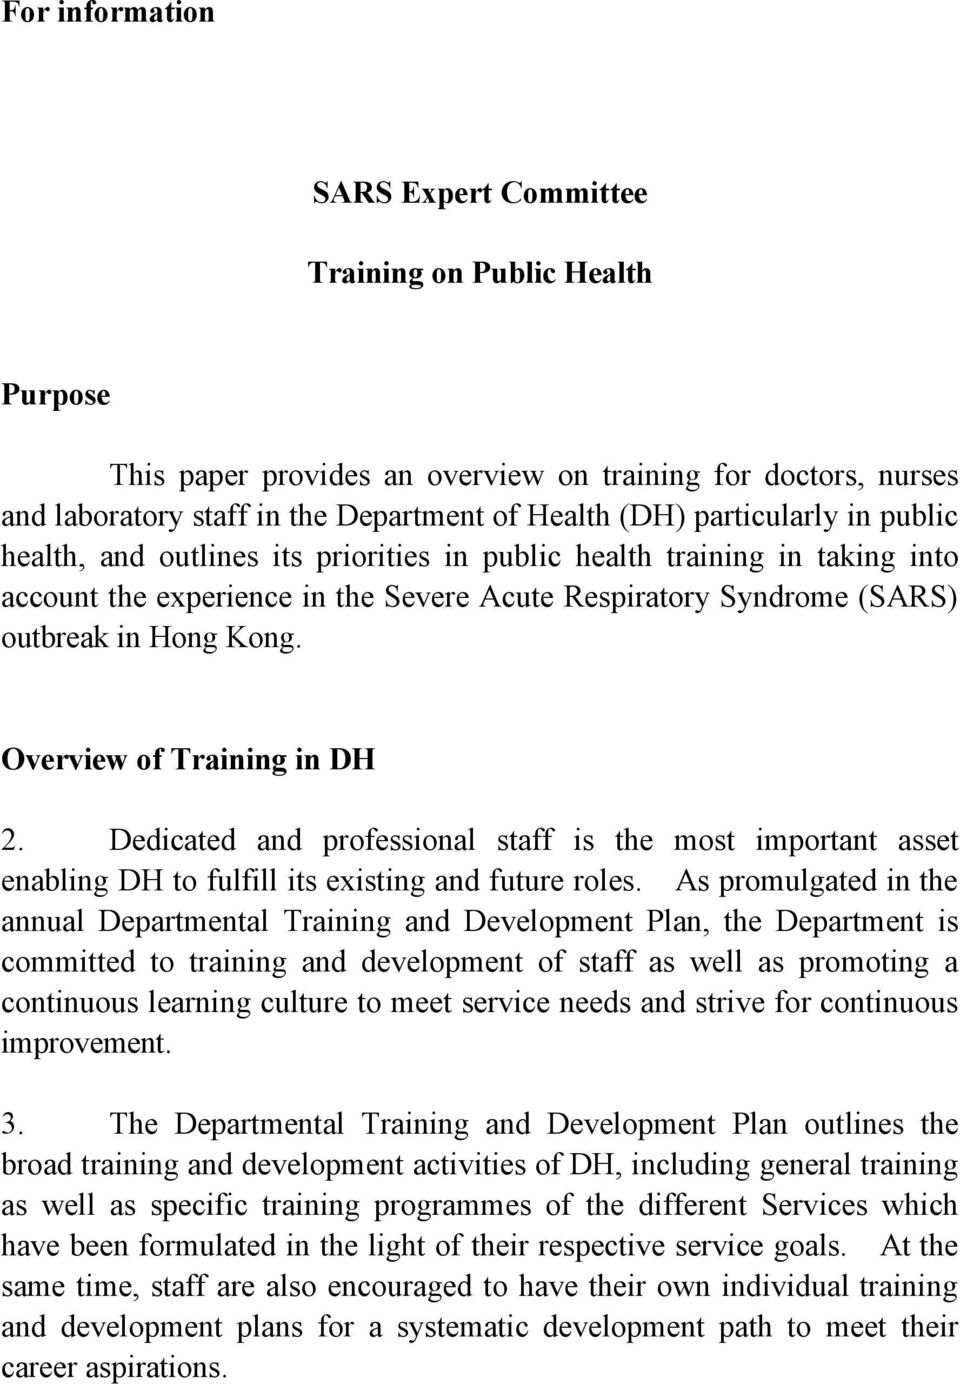 Overview of Training in DH 2. Dedicated and professional staff is the most important asset enabling DH to fulfill its existing and future roles.